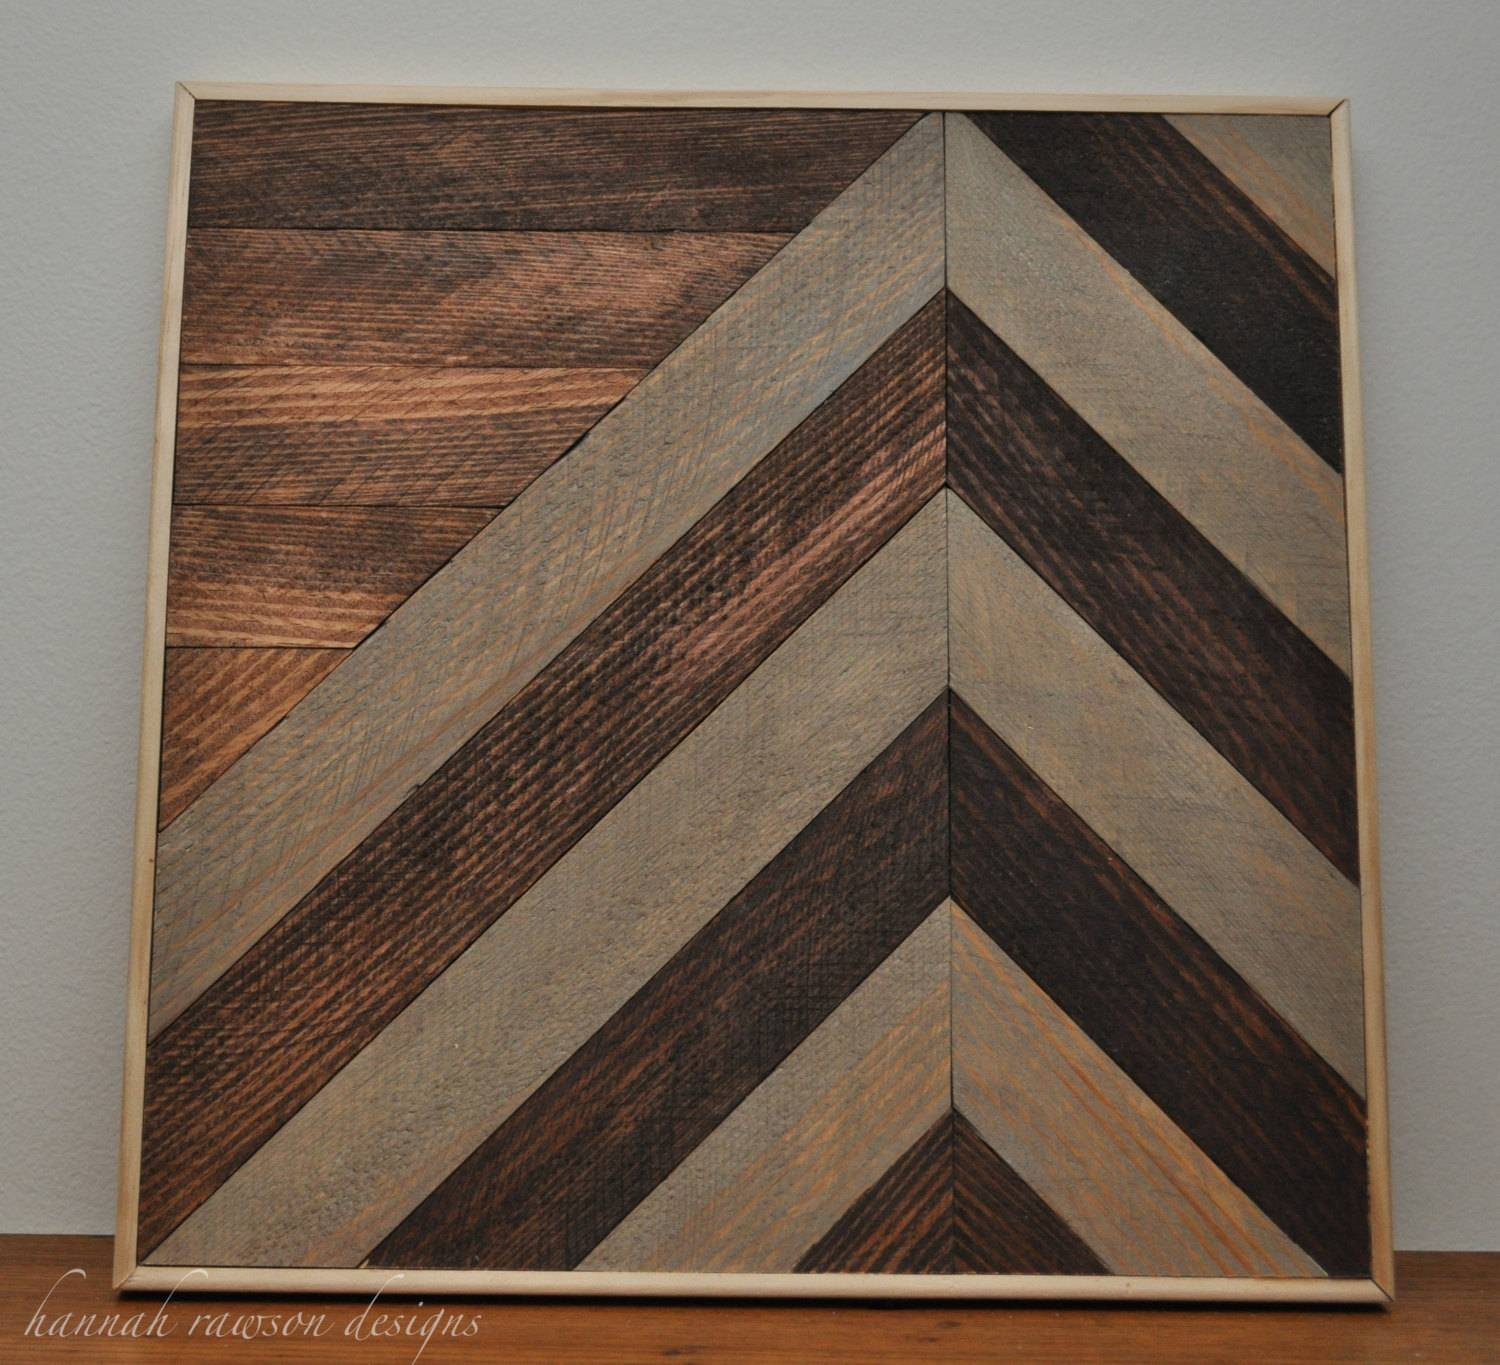 Wall Art Designs: Best Of Designing Wooden Wall Art Decor Visua In Current Natural Wood Wall Art (View 15 of 20)